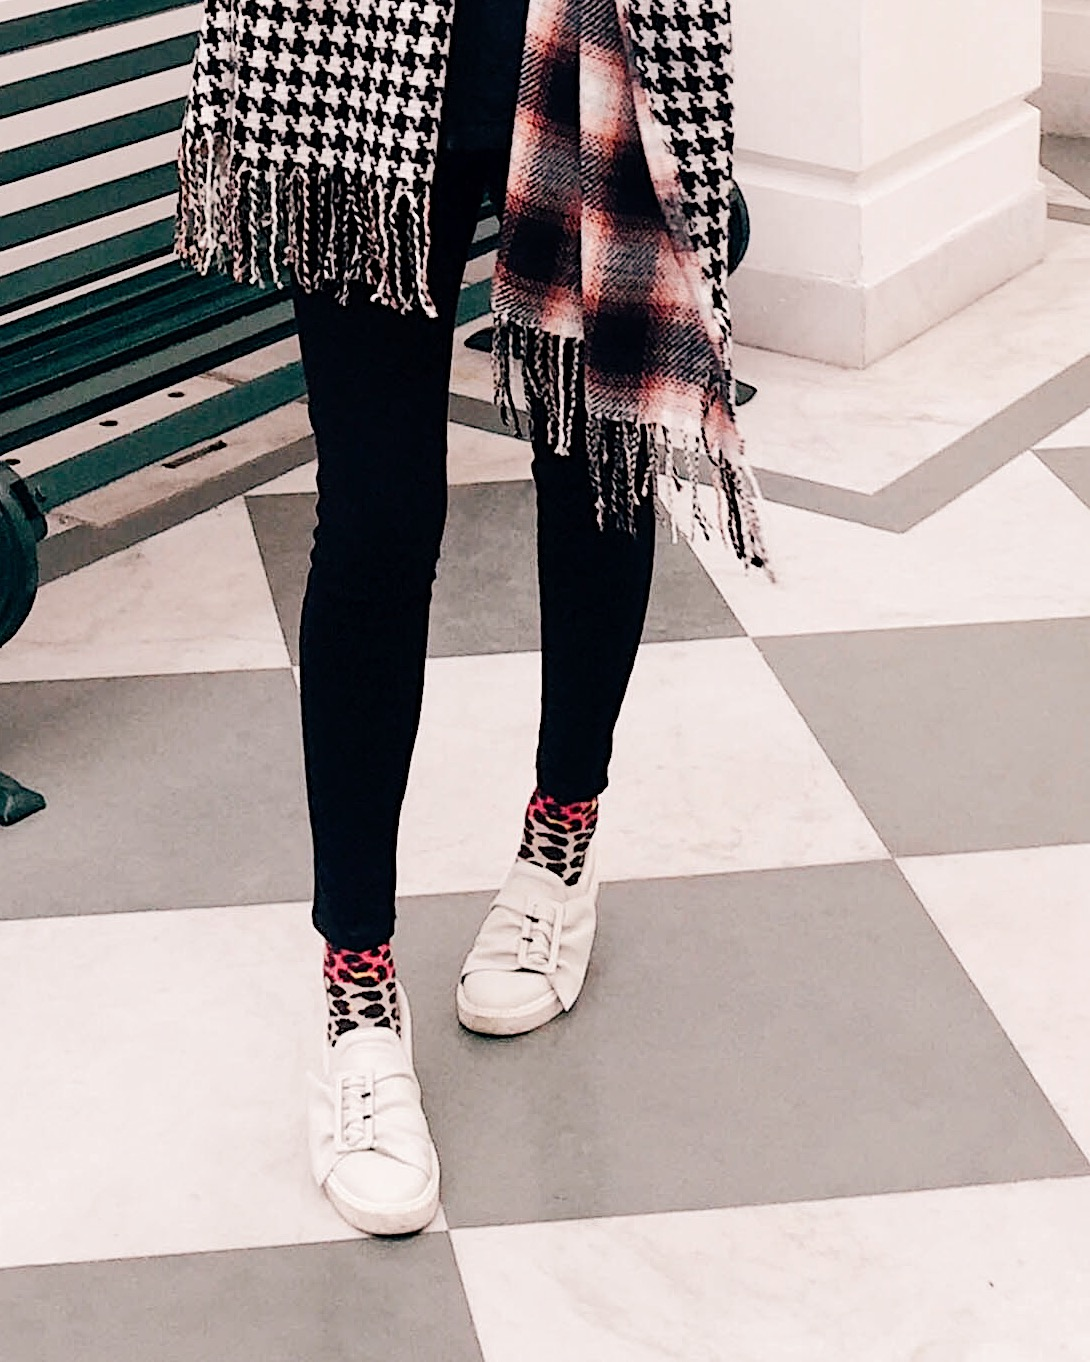 houndstooth scarf, blanket scarf style, how to dress for shopping, what to wear to shopping, casual winter outfit, style blanket scarf, top indian blog, indian fashion blogger, uk blog, winter outfits, weekend winter outfit, casual chic, effortless style, 2017 blogger outfit